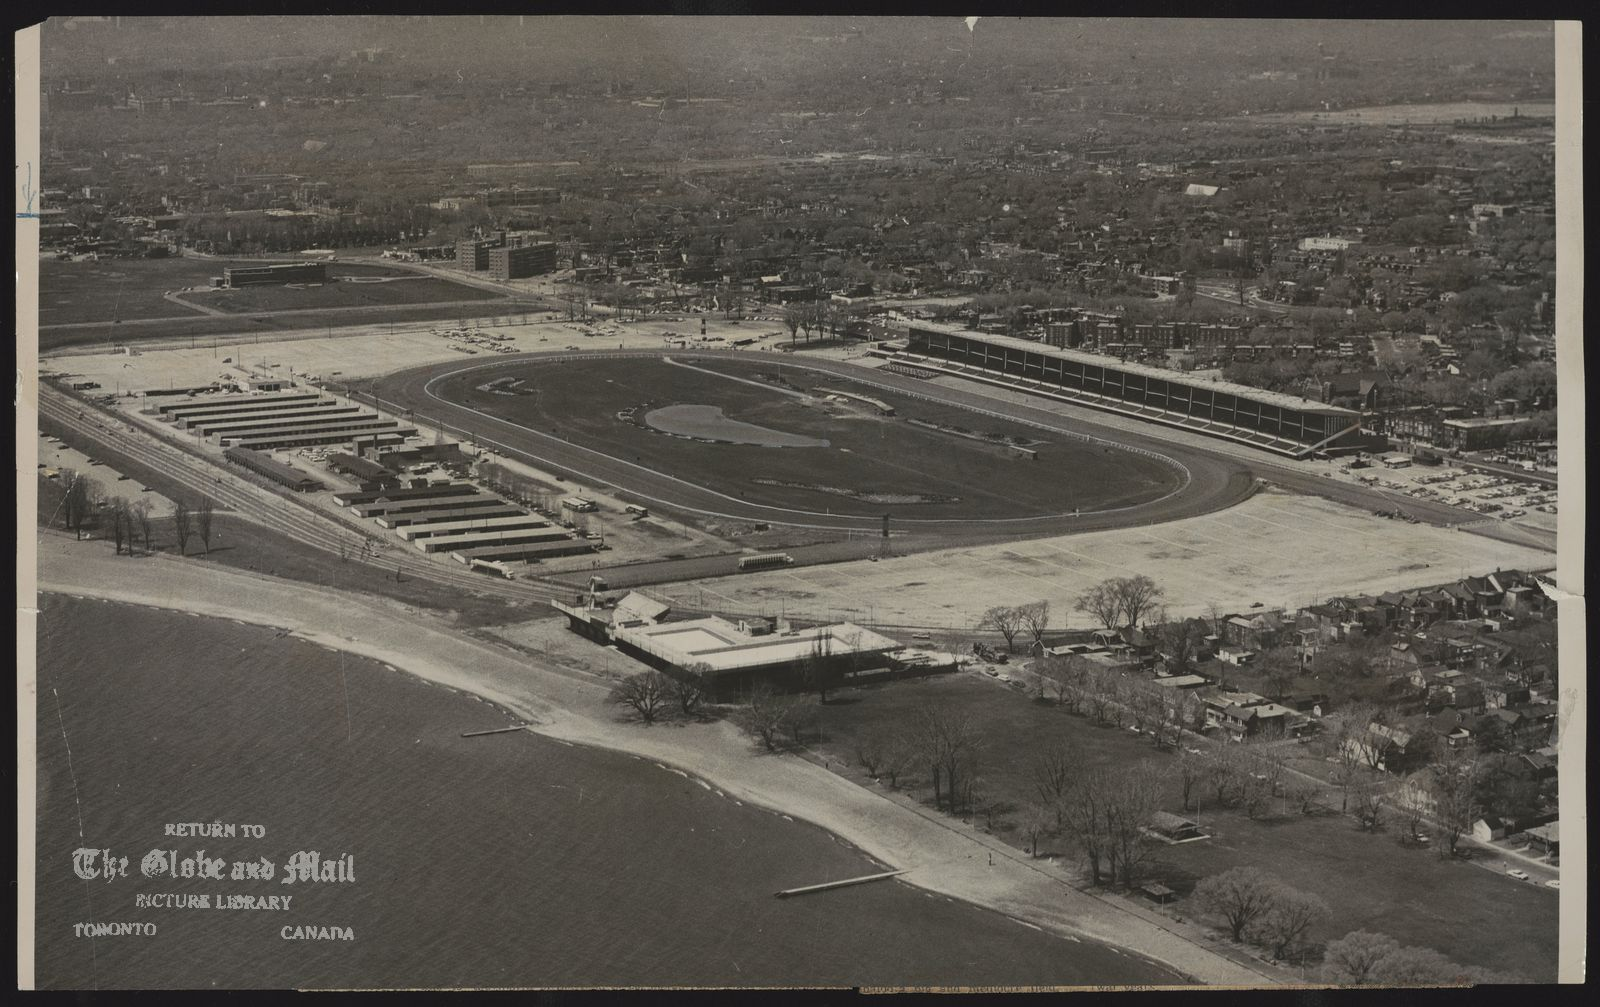 BEACHES OLYMPIC SWIMMING POOL (Toronto) Air view locking northwest from lakefront at foot of Woodbine Ave. indicates areas available for Oympic pool parking and other spectator problems. Used May 30, 1963 p.27